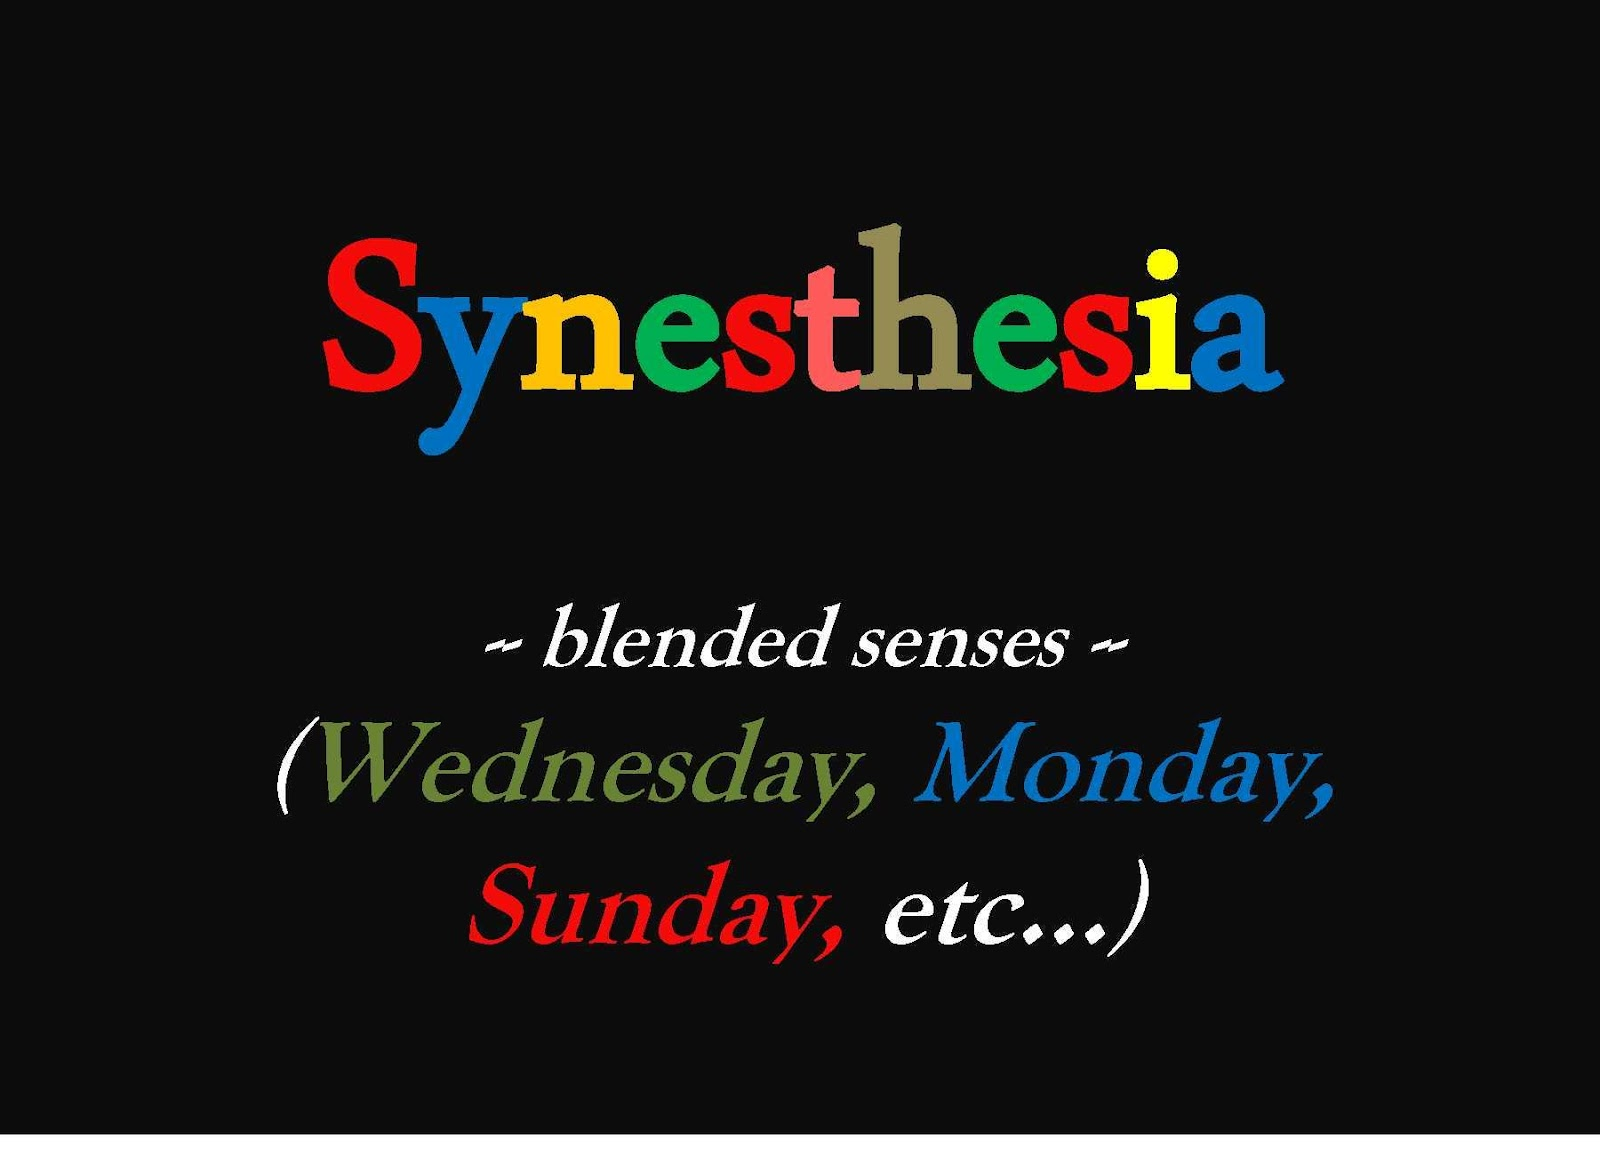 https://martyreepdotcom.files.wordpress.com/2015/07/synesthesia-picture-final.jpg